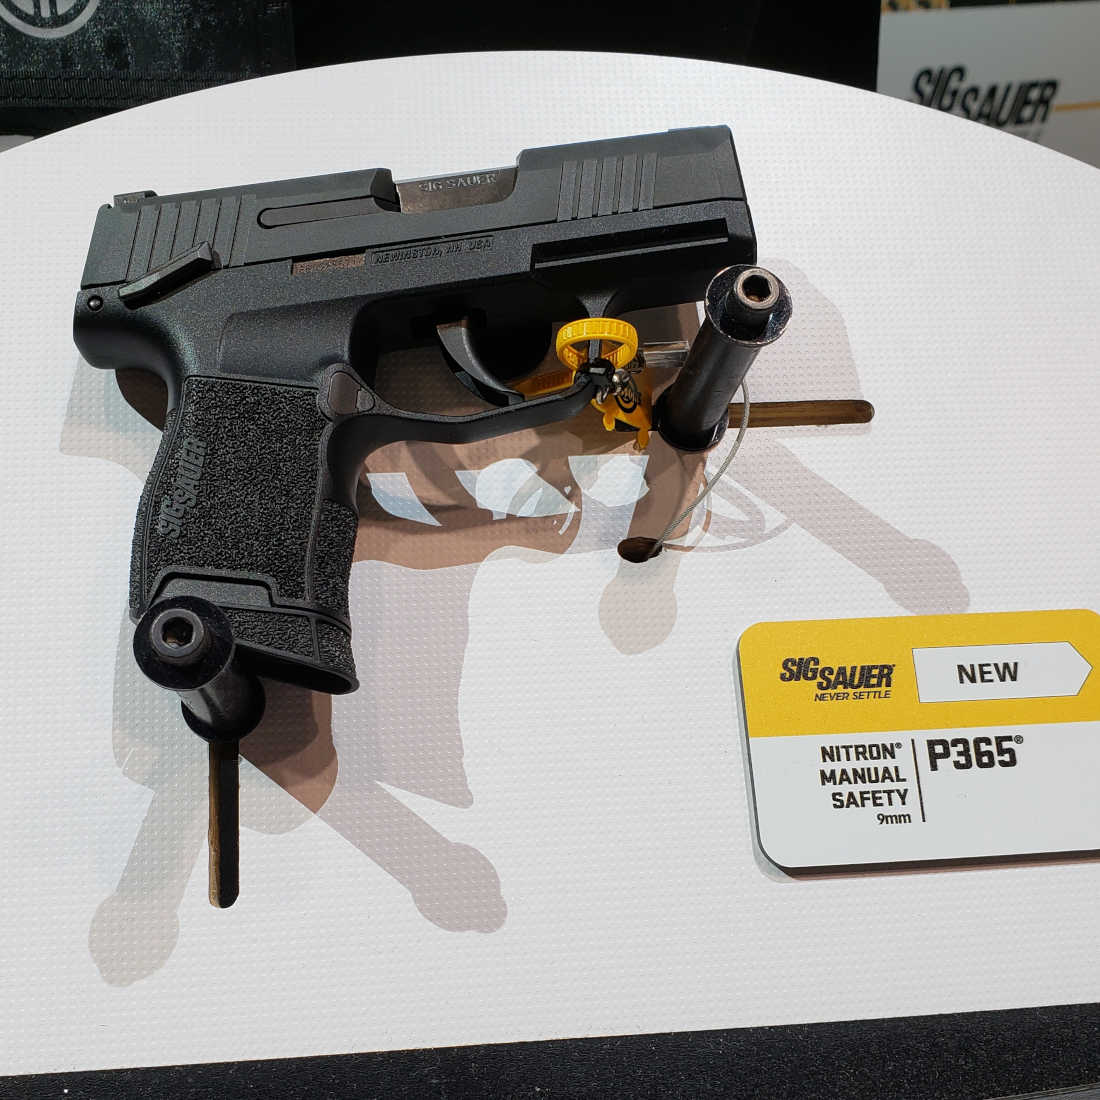 Report from SHOT Show: Sig Sauer's Newest Products